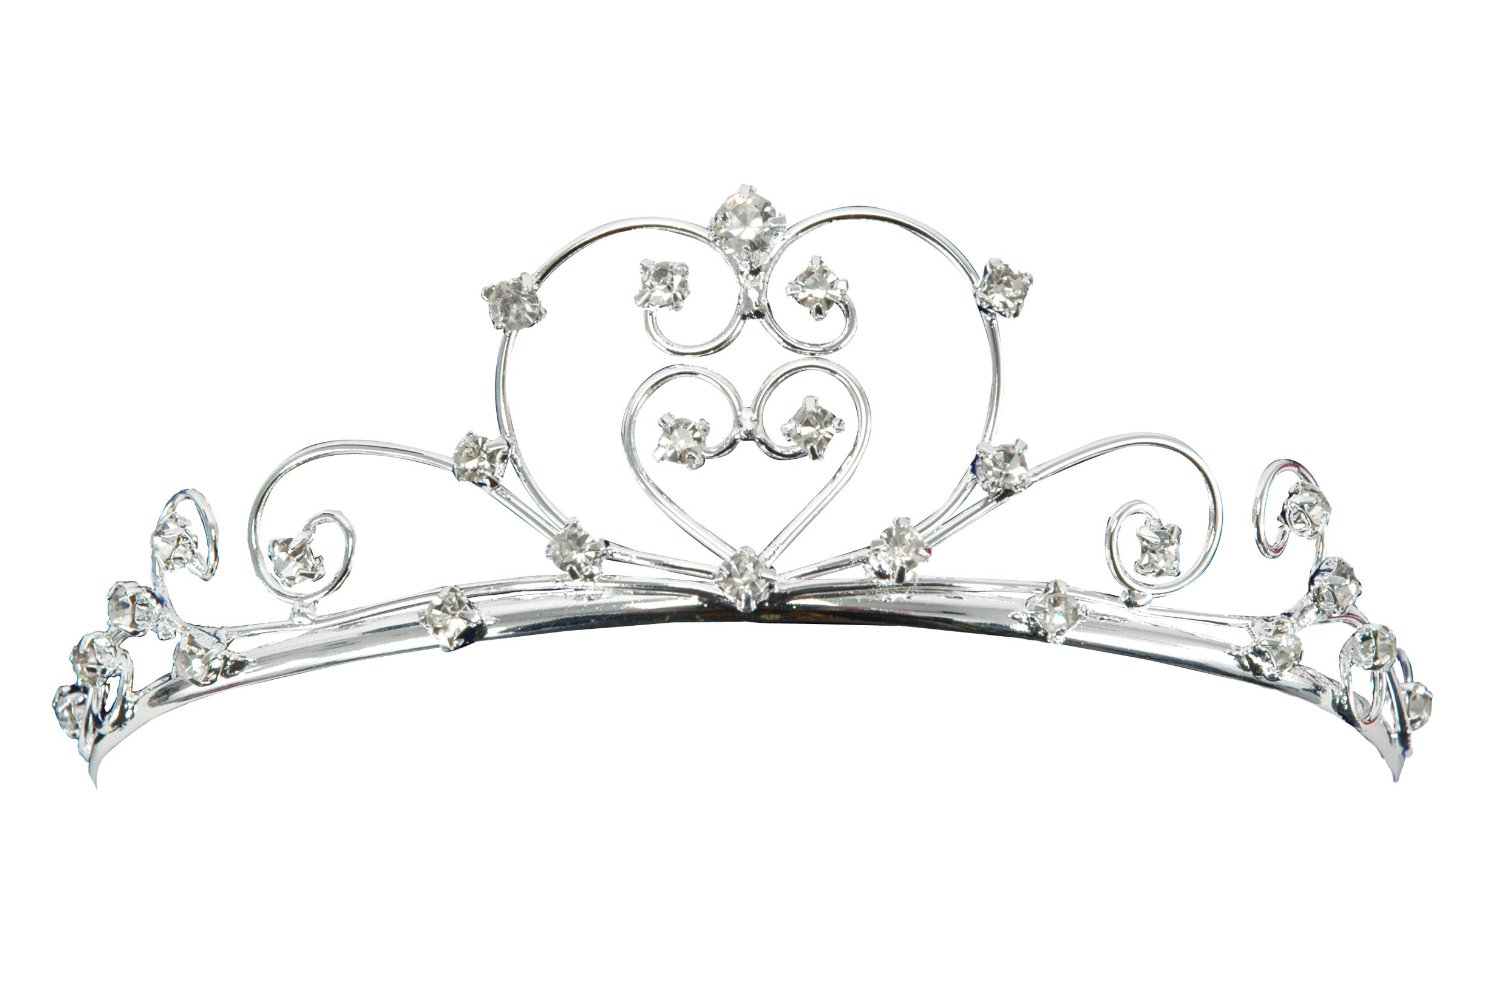 Free PRINCESS CROWN PNG, Download Free Clip Art, Free Clip.